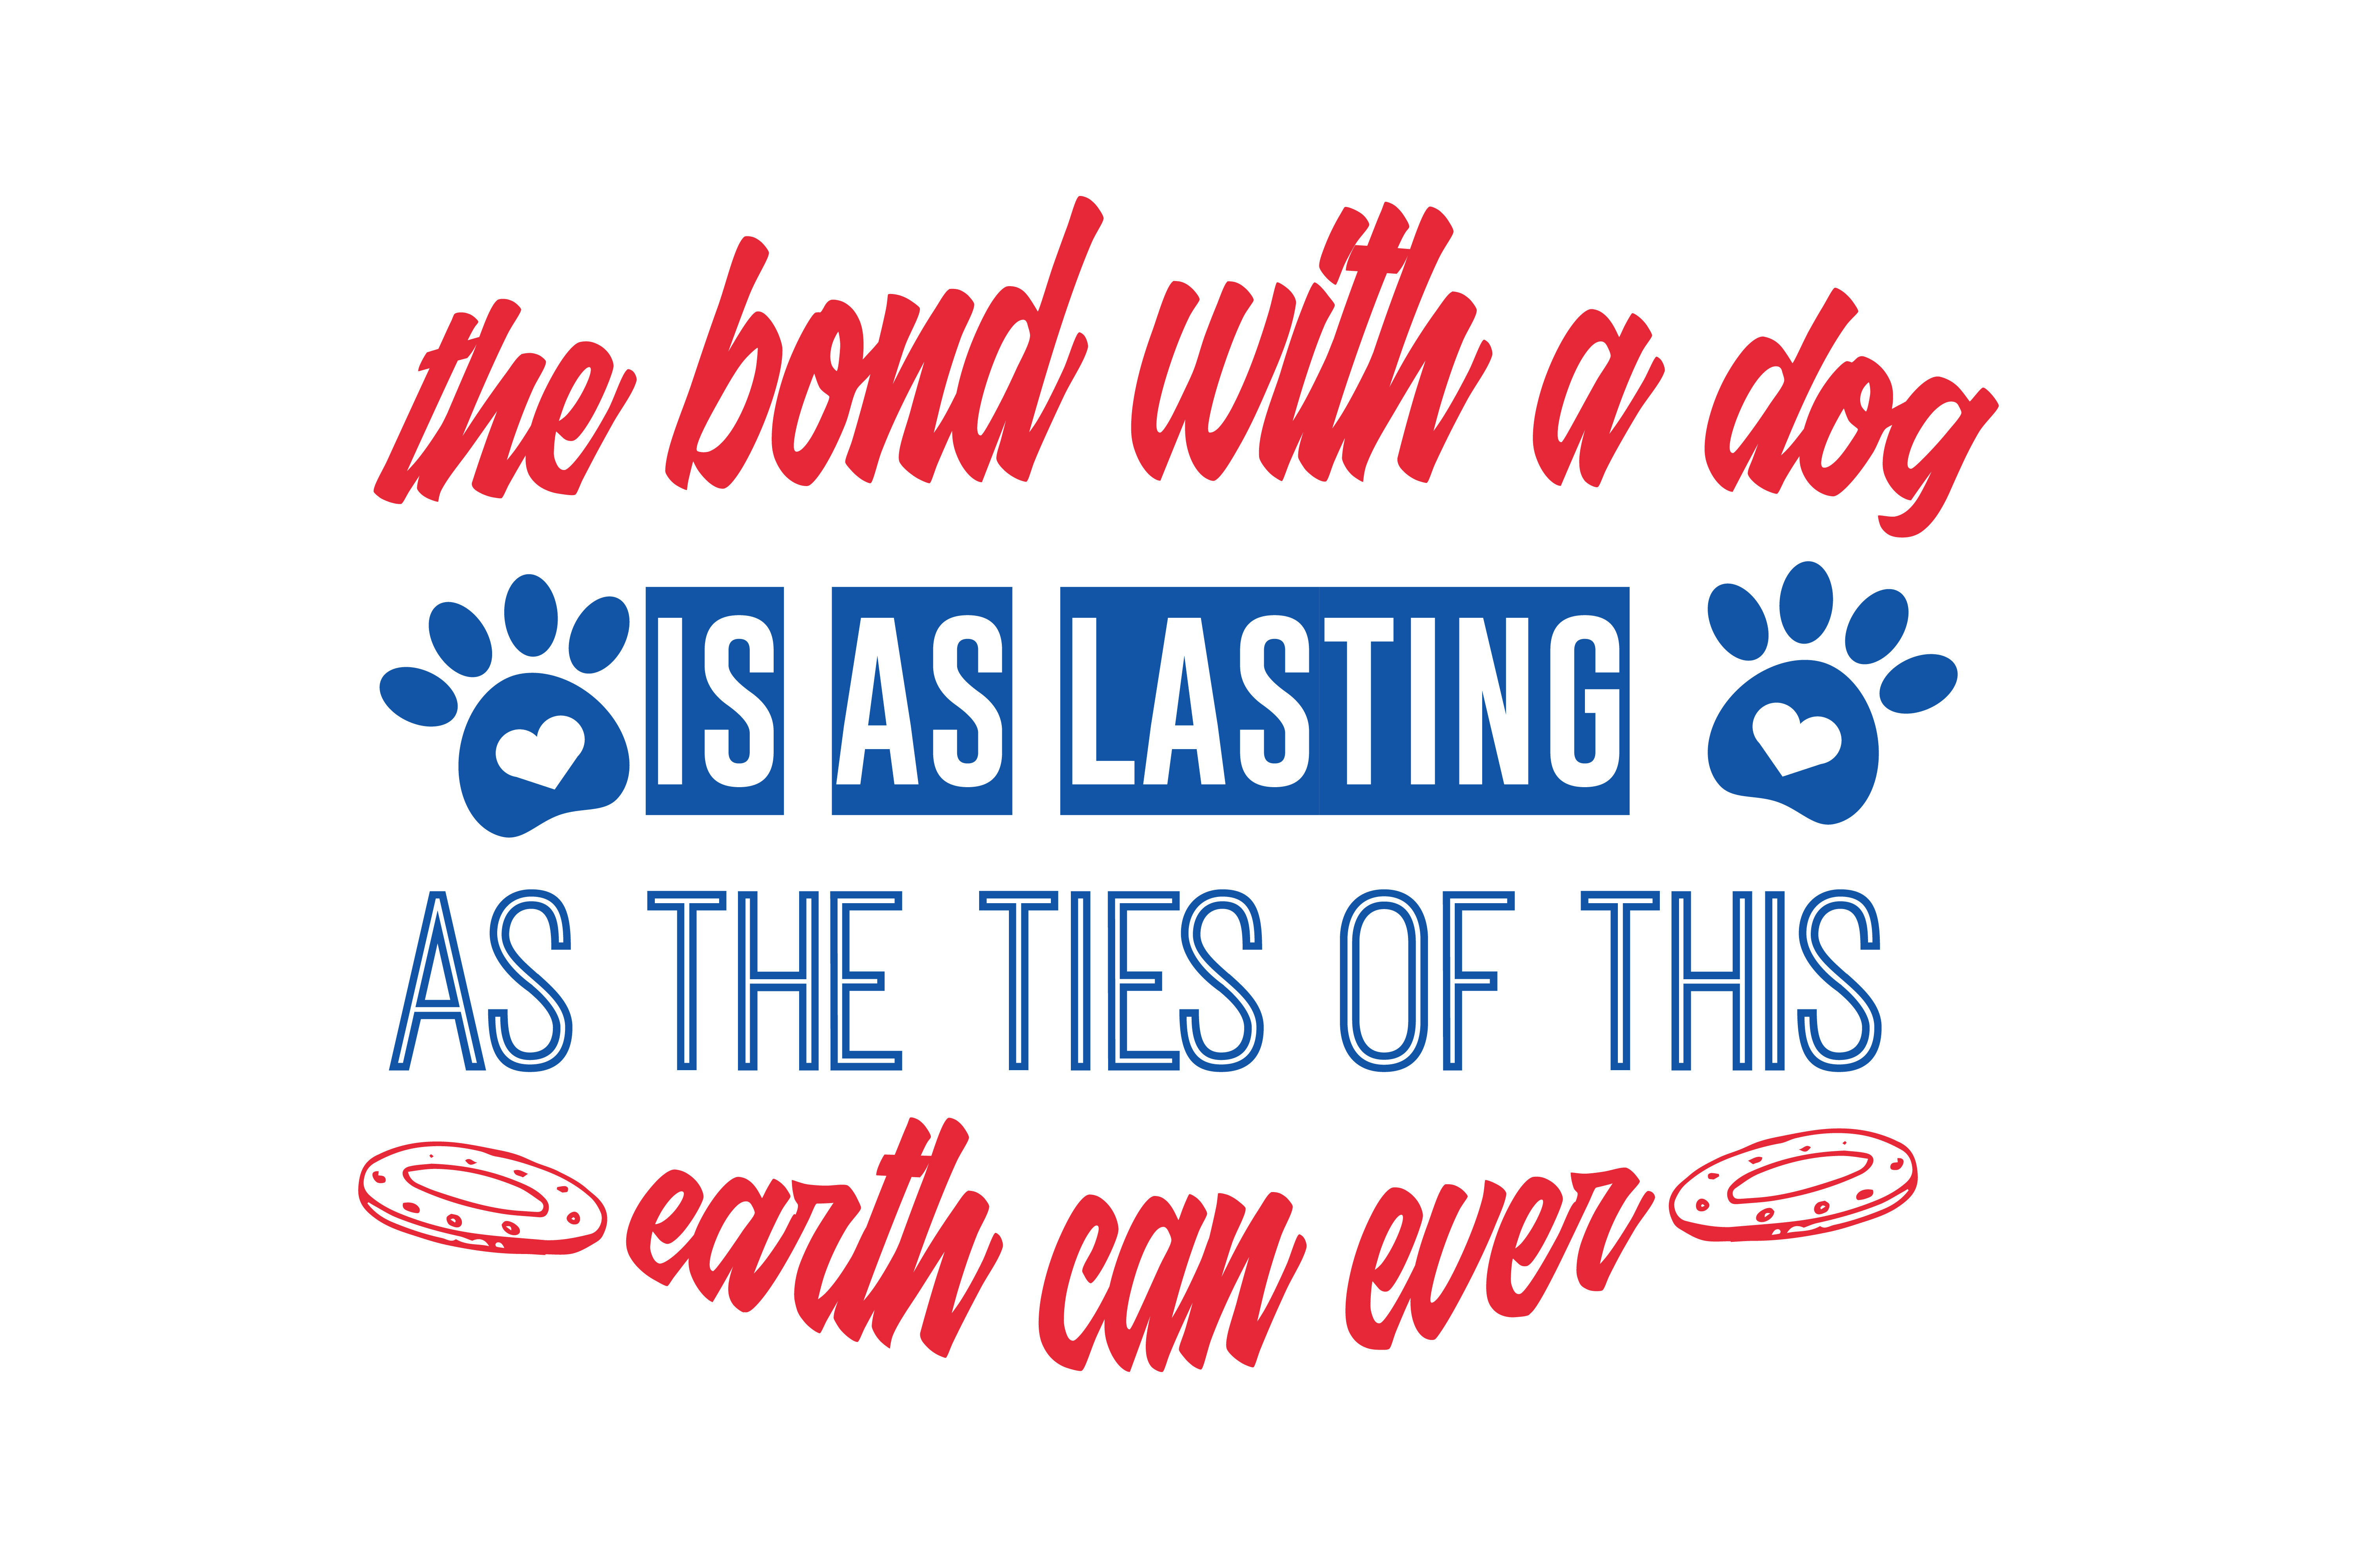 The Bond With A Dog Is As Lasting As The Ties Of This Earth Can